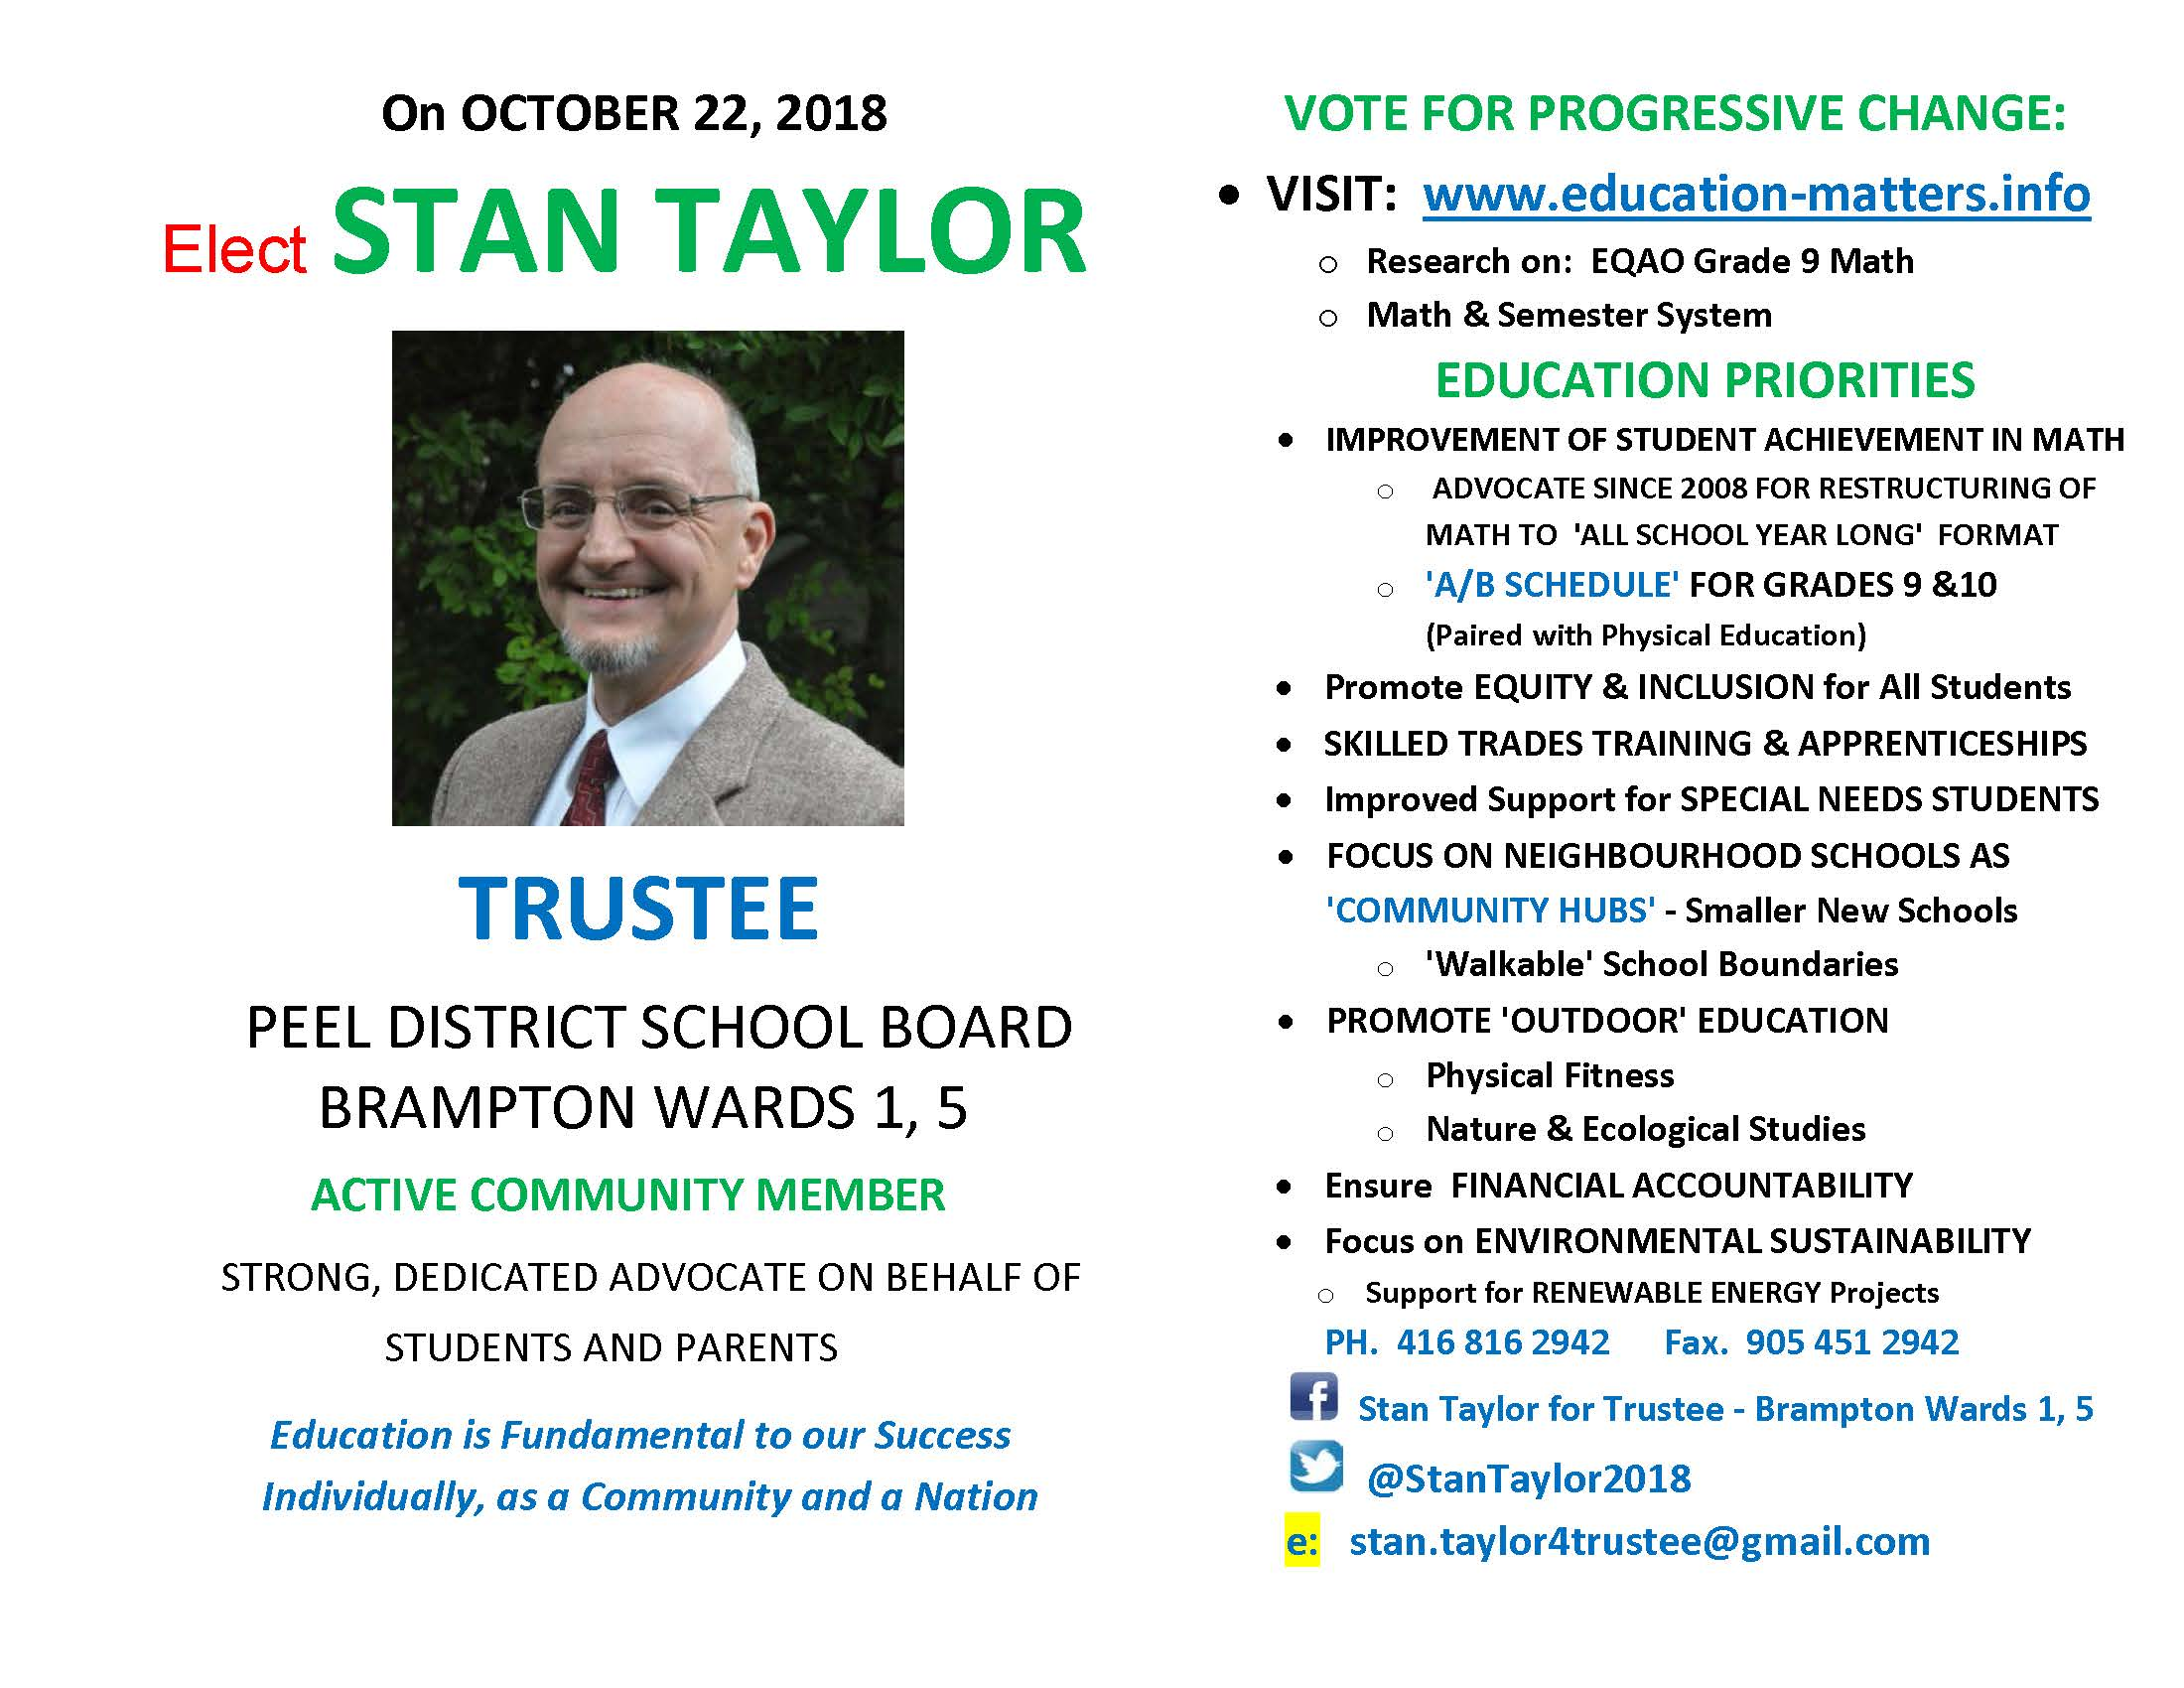 TRUSTEE Pamphlet - Stan Taylor, Final